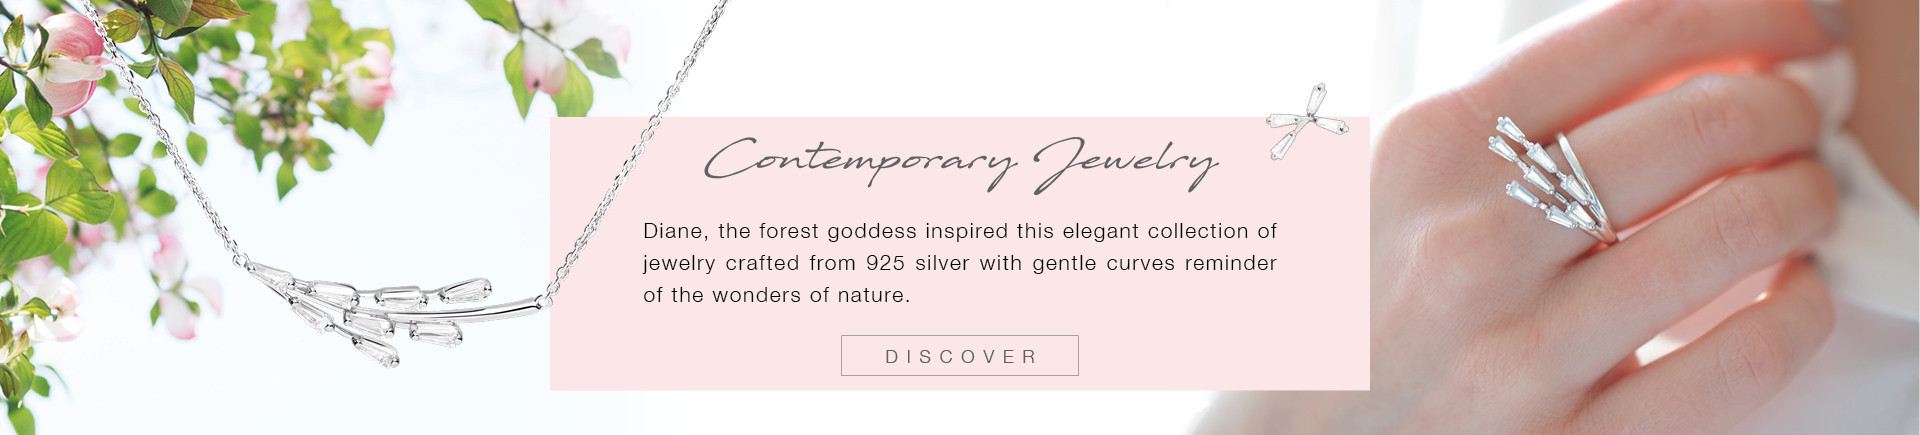 Diane, an inspiring jewelery collection for all women.